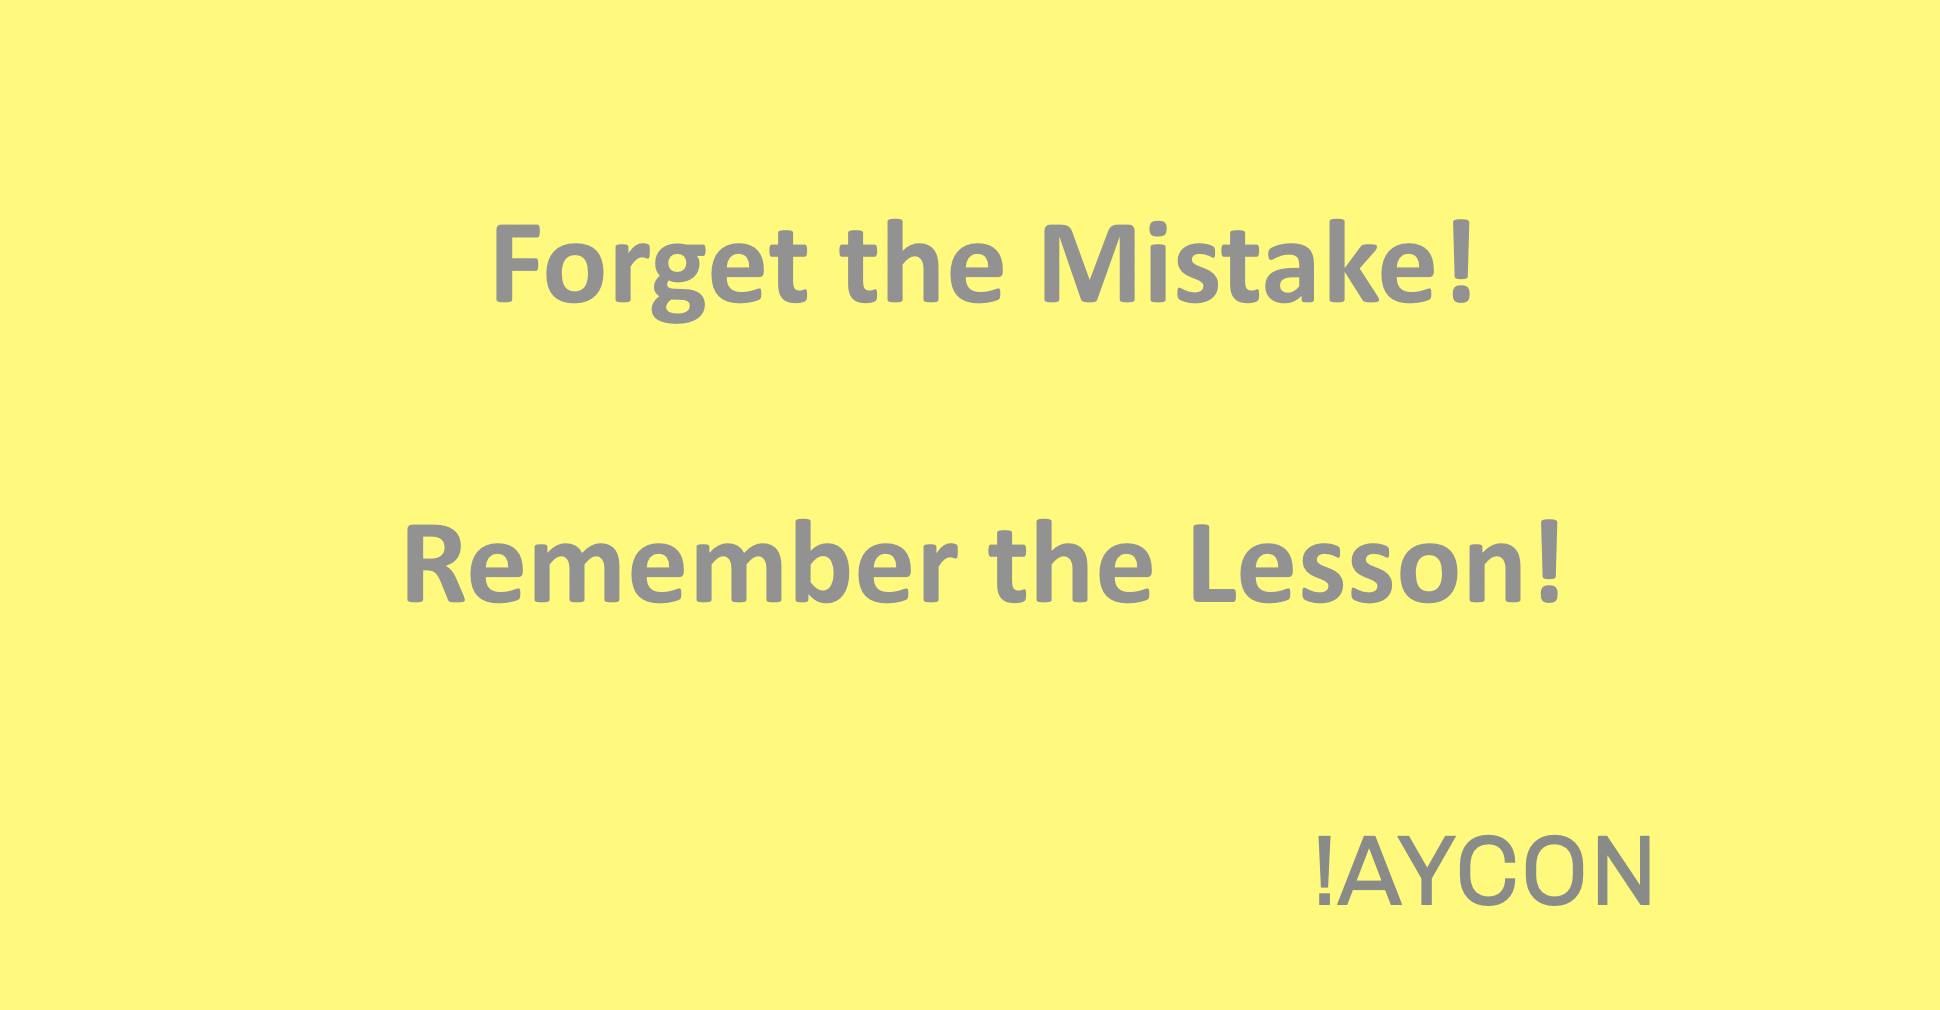 Forget the Mistake - Remember the Lesson!